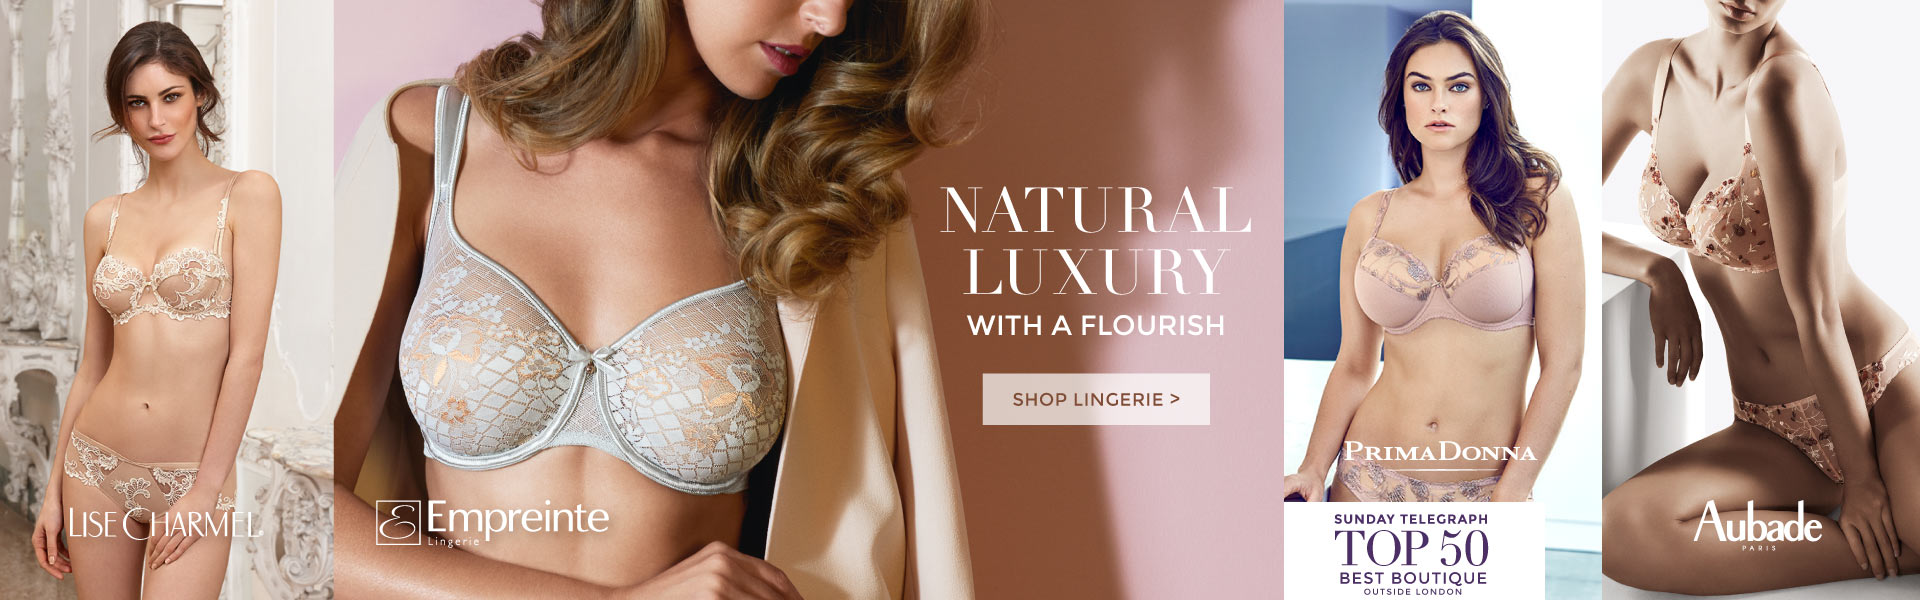 Natural Luxury Lingerie